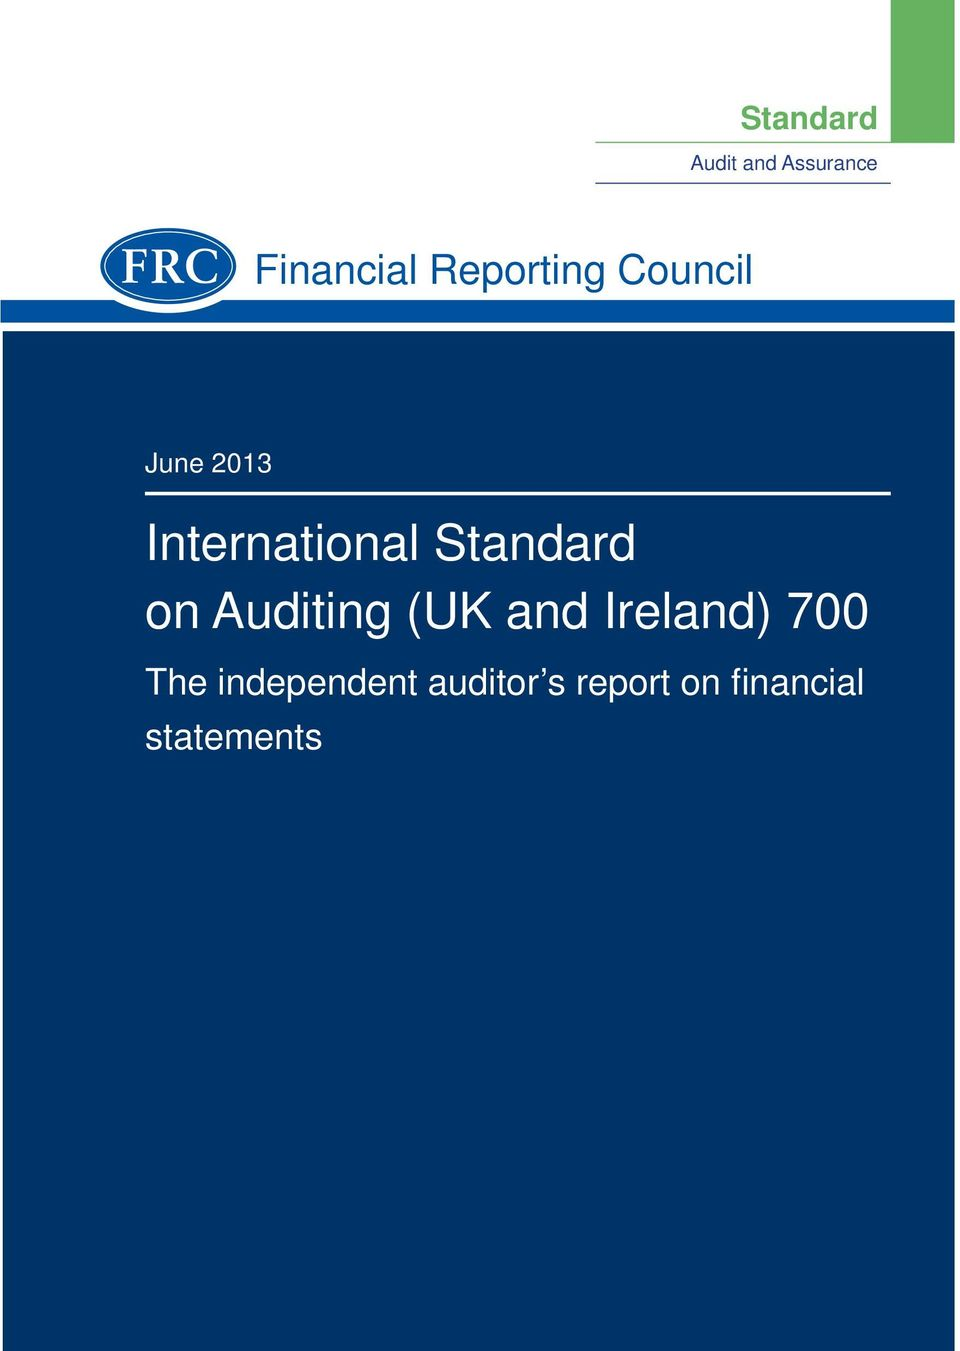 Standard on Auditing (UK and Ireland) 700